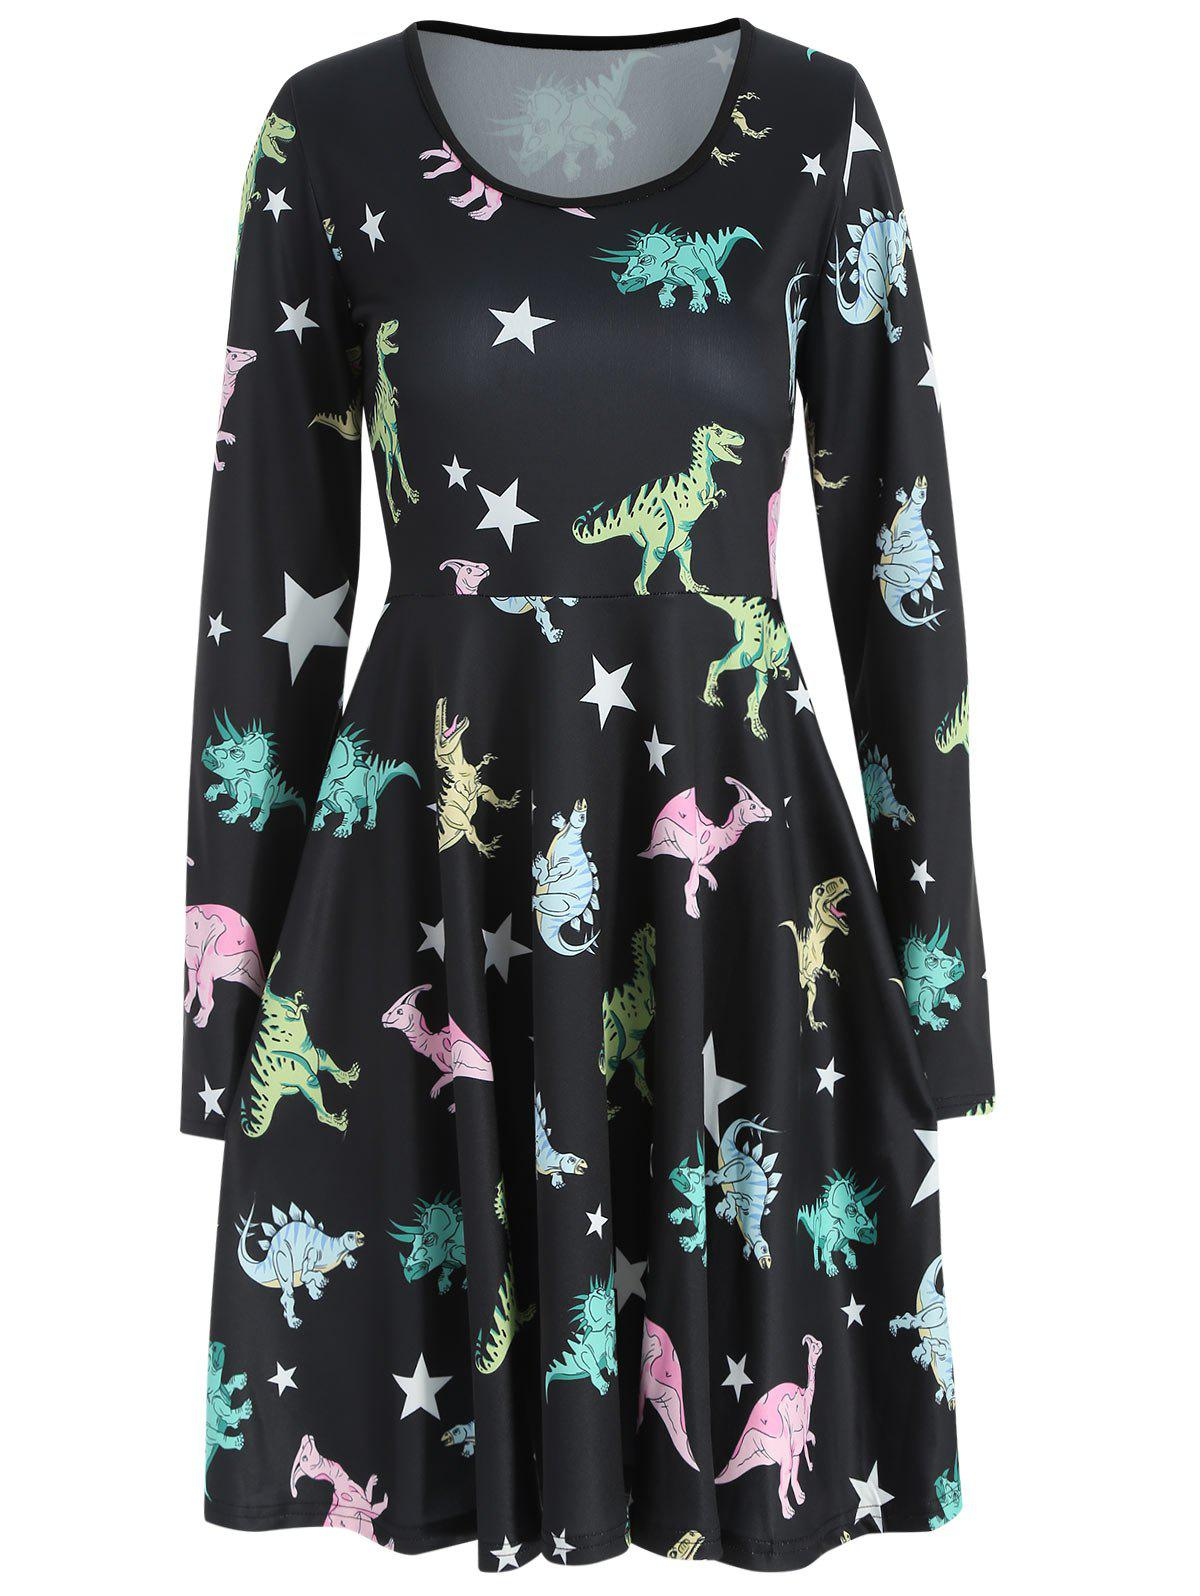 Sale Dinosaurs Print High Waist Dress